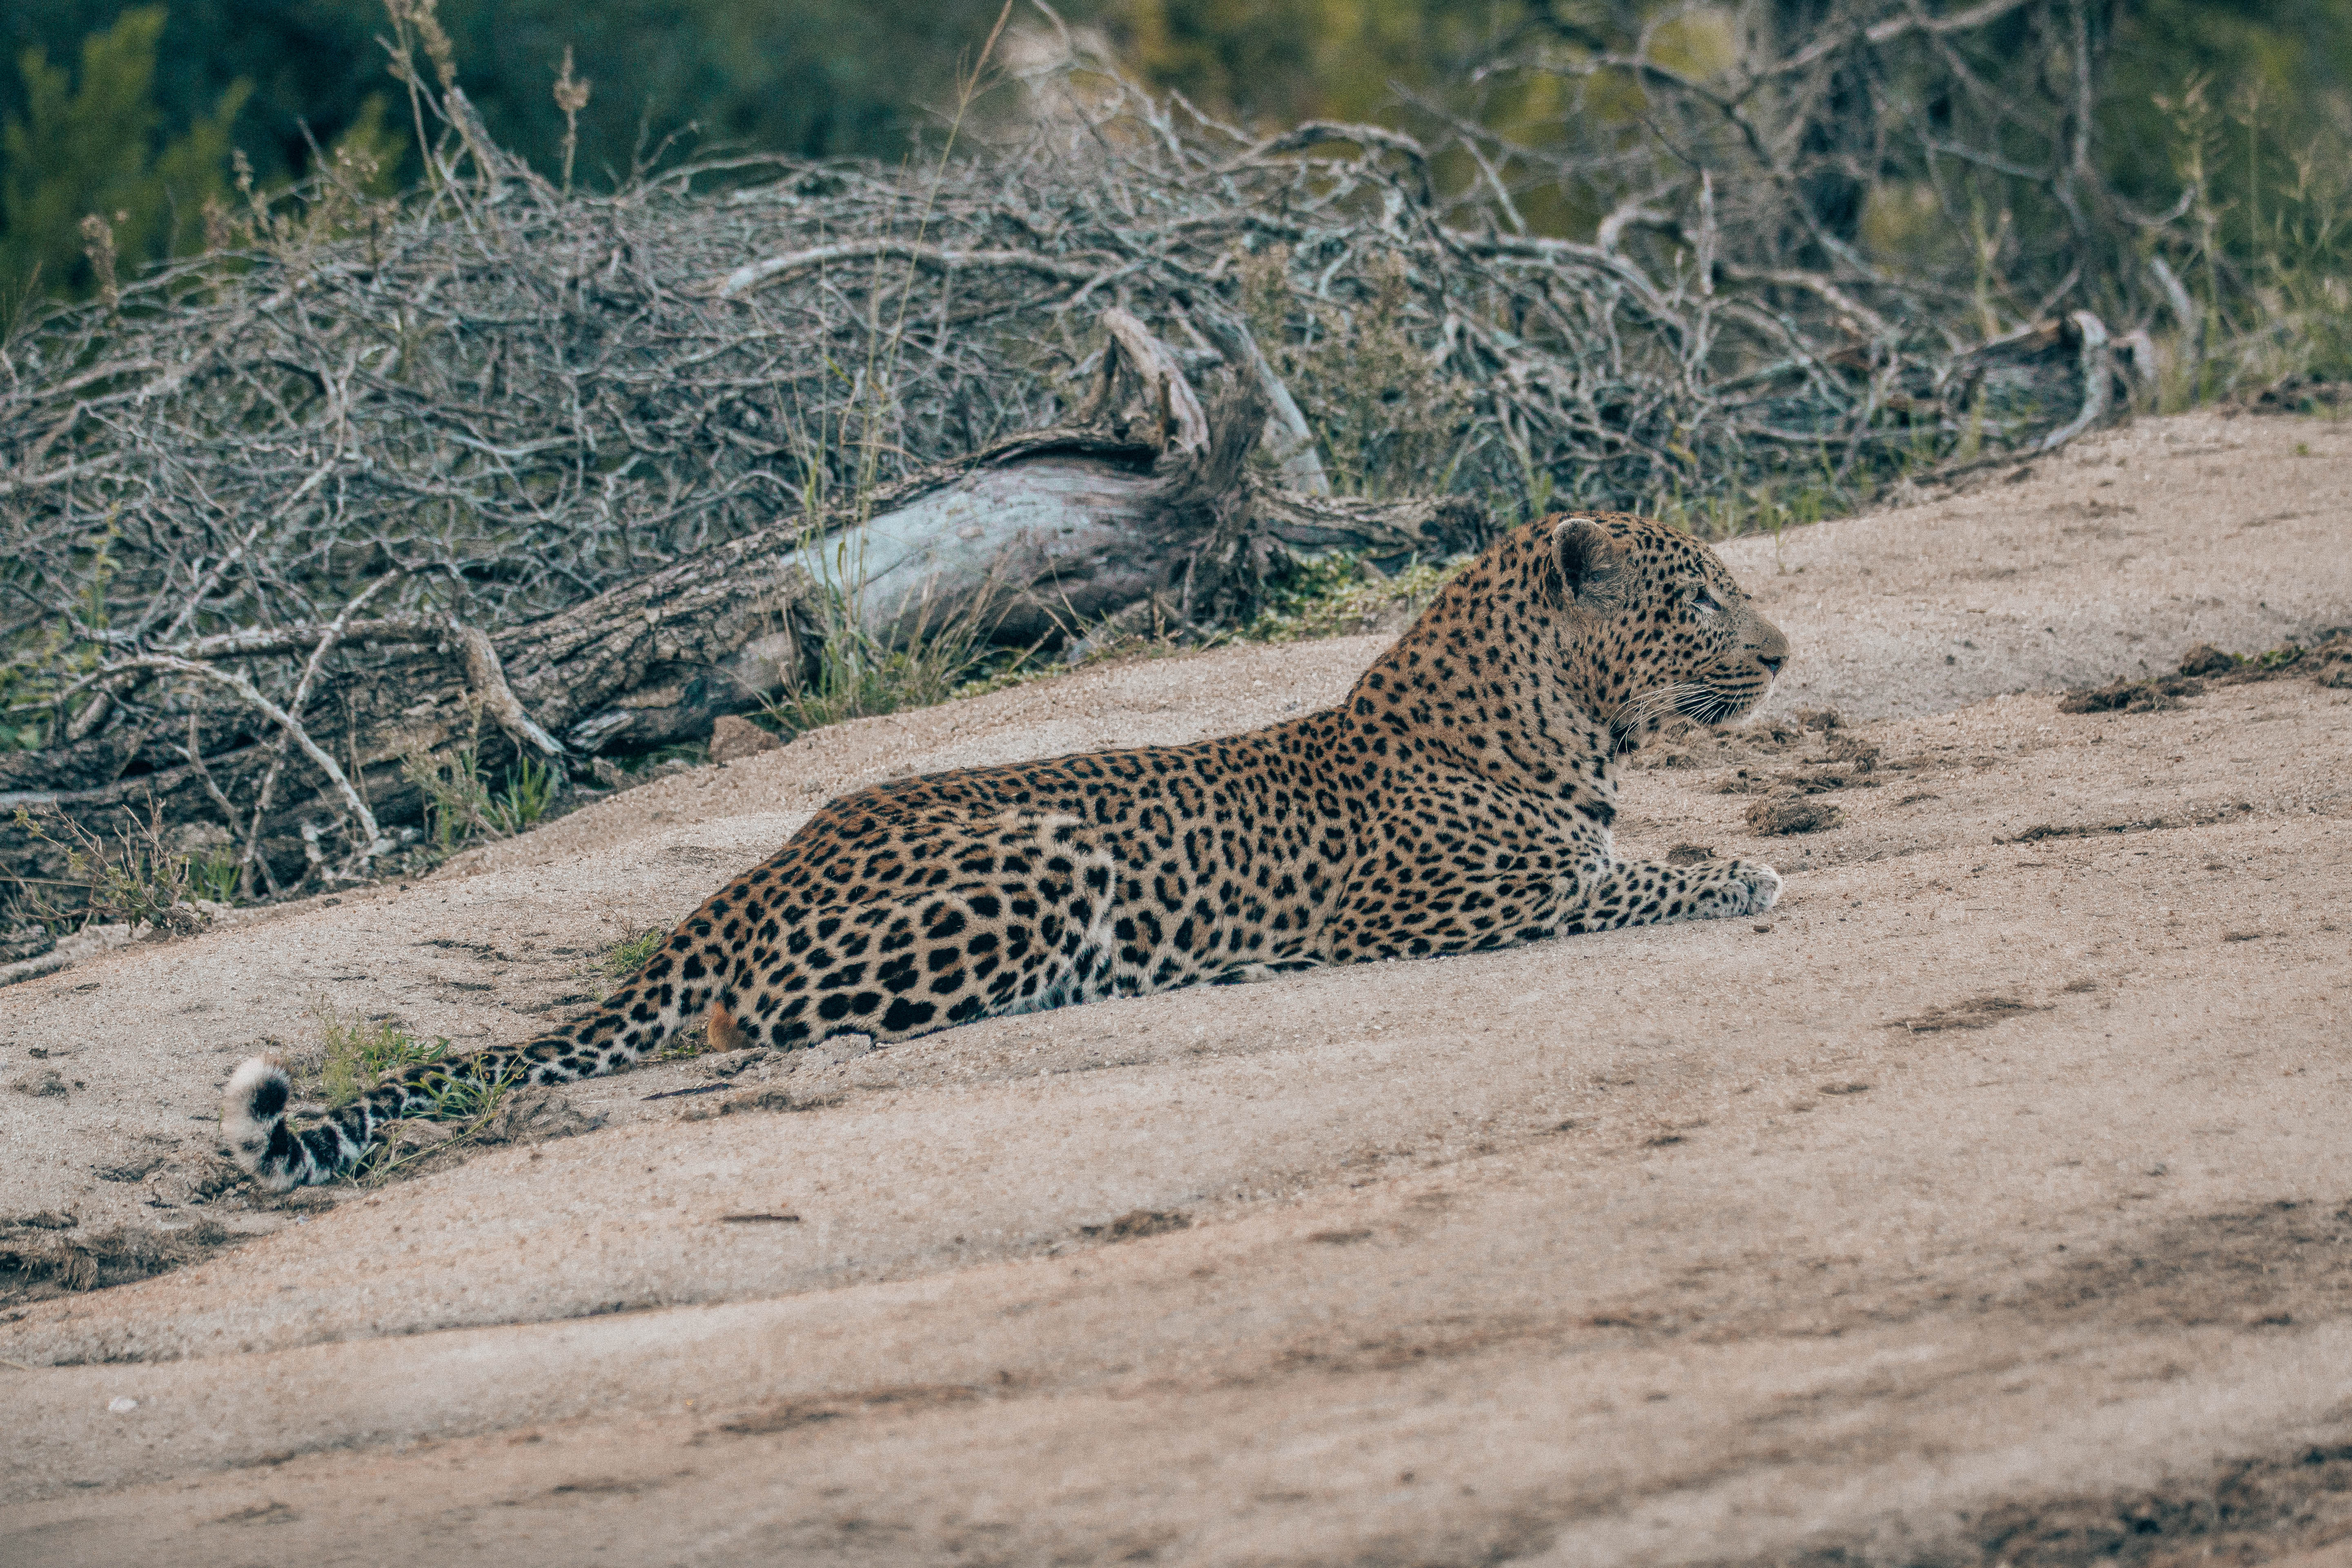 The male leopard looking over the impala by the lodge.